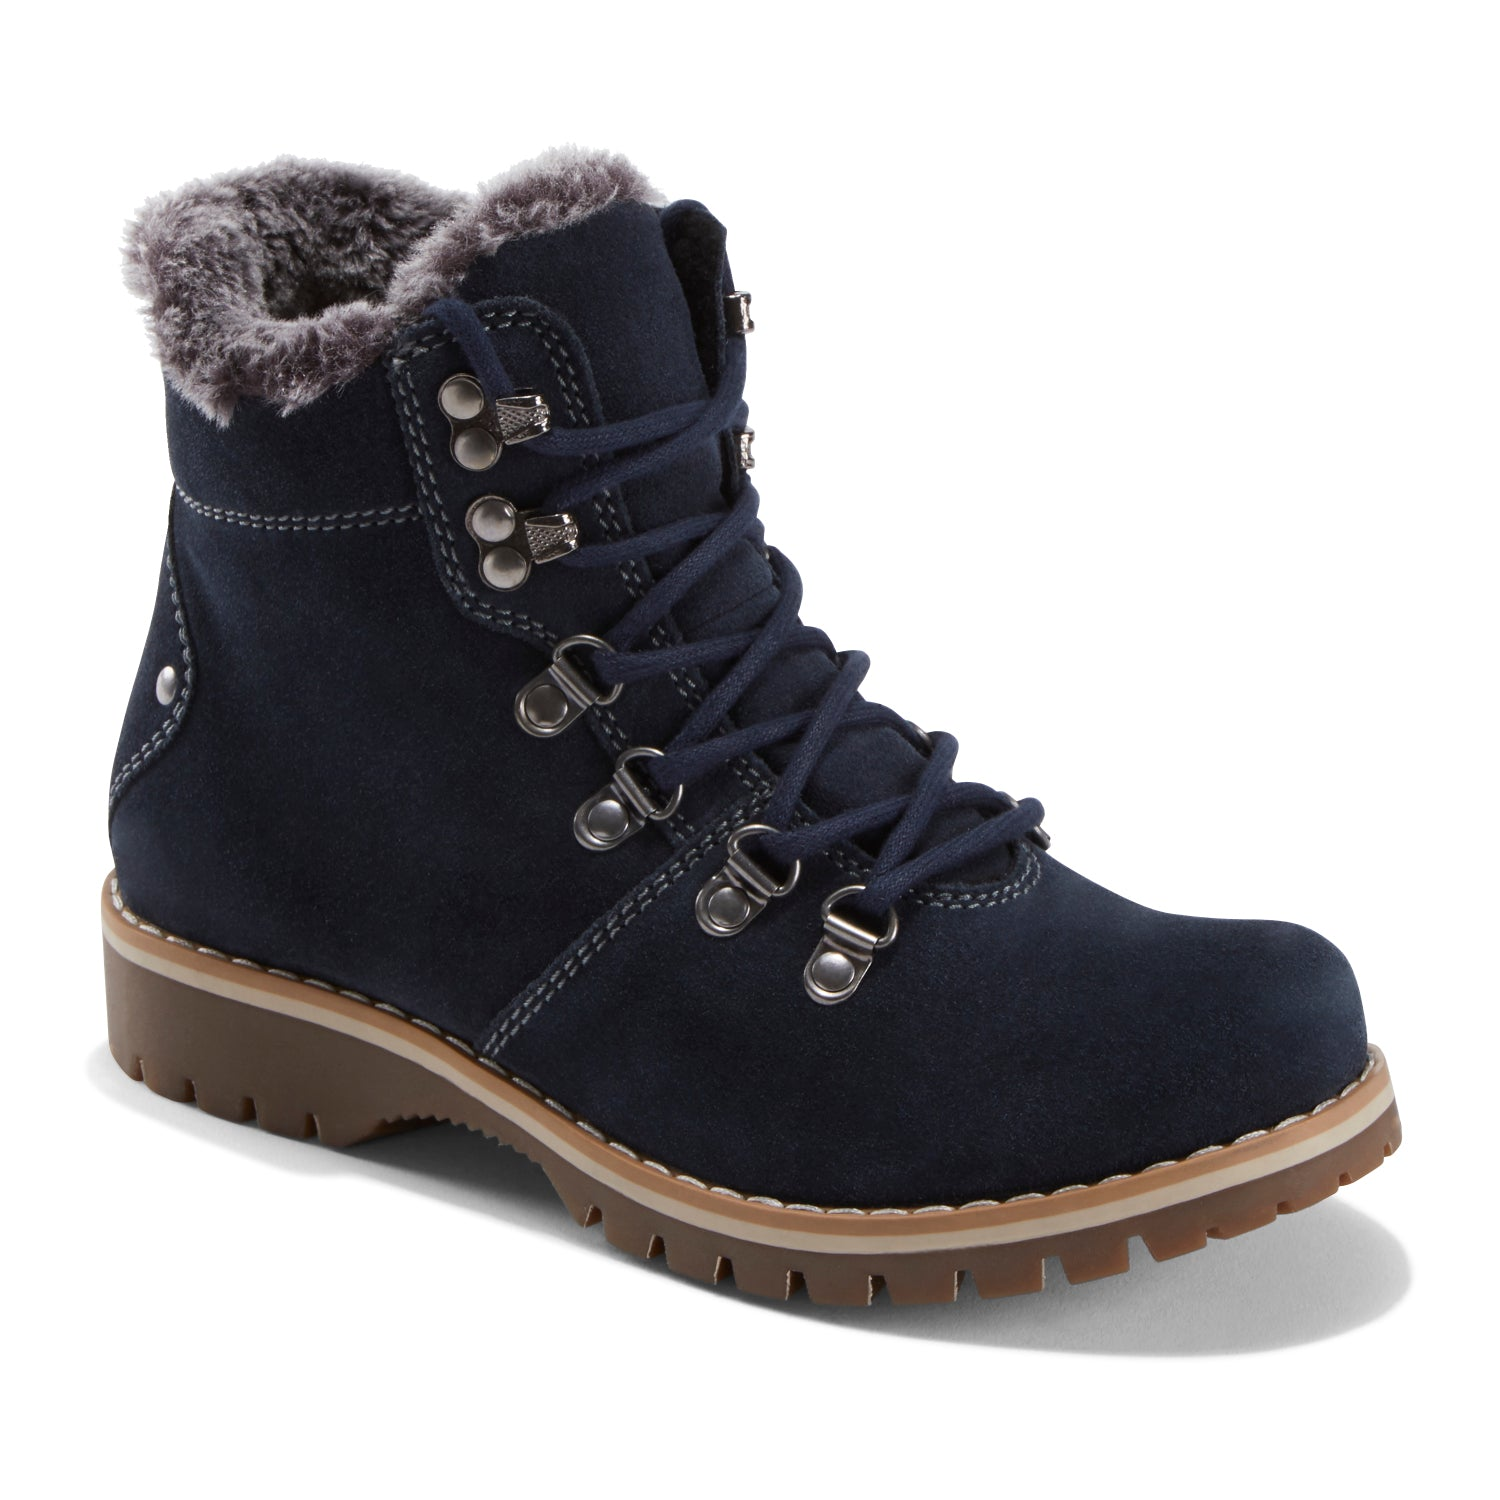 Imagine the possibilities this adorable, outdoorsy boot will bring to your wardrobe staples. Wear with denim, leggings and skirts with its contrast stitching, faux fur collar and fabulous hiking boot details.